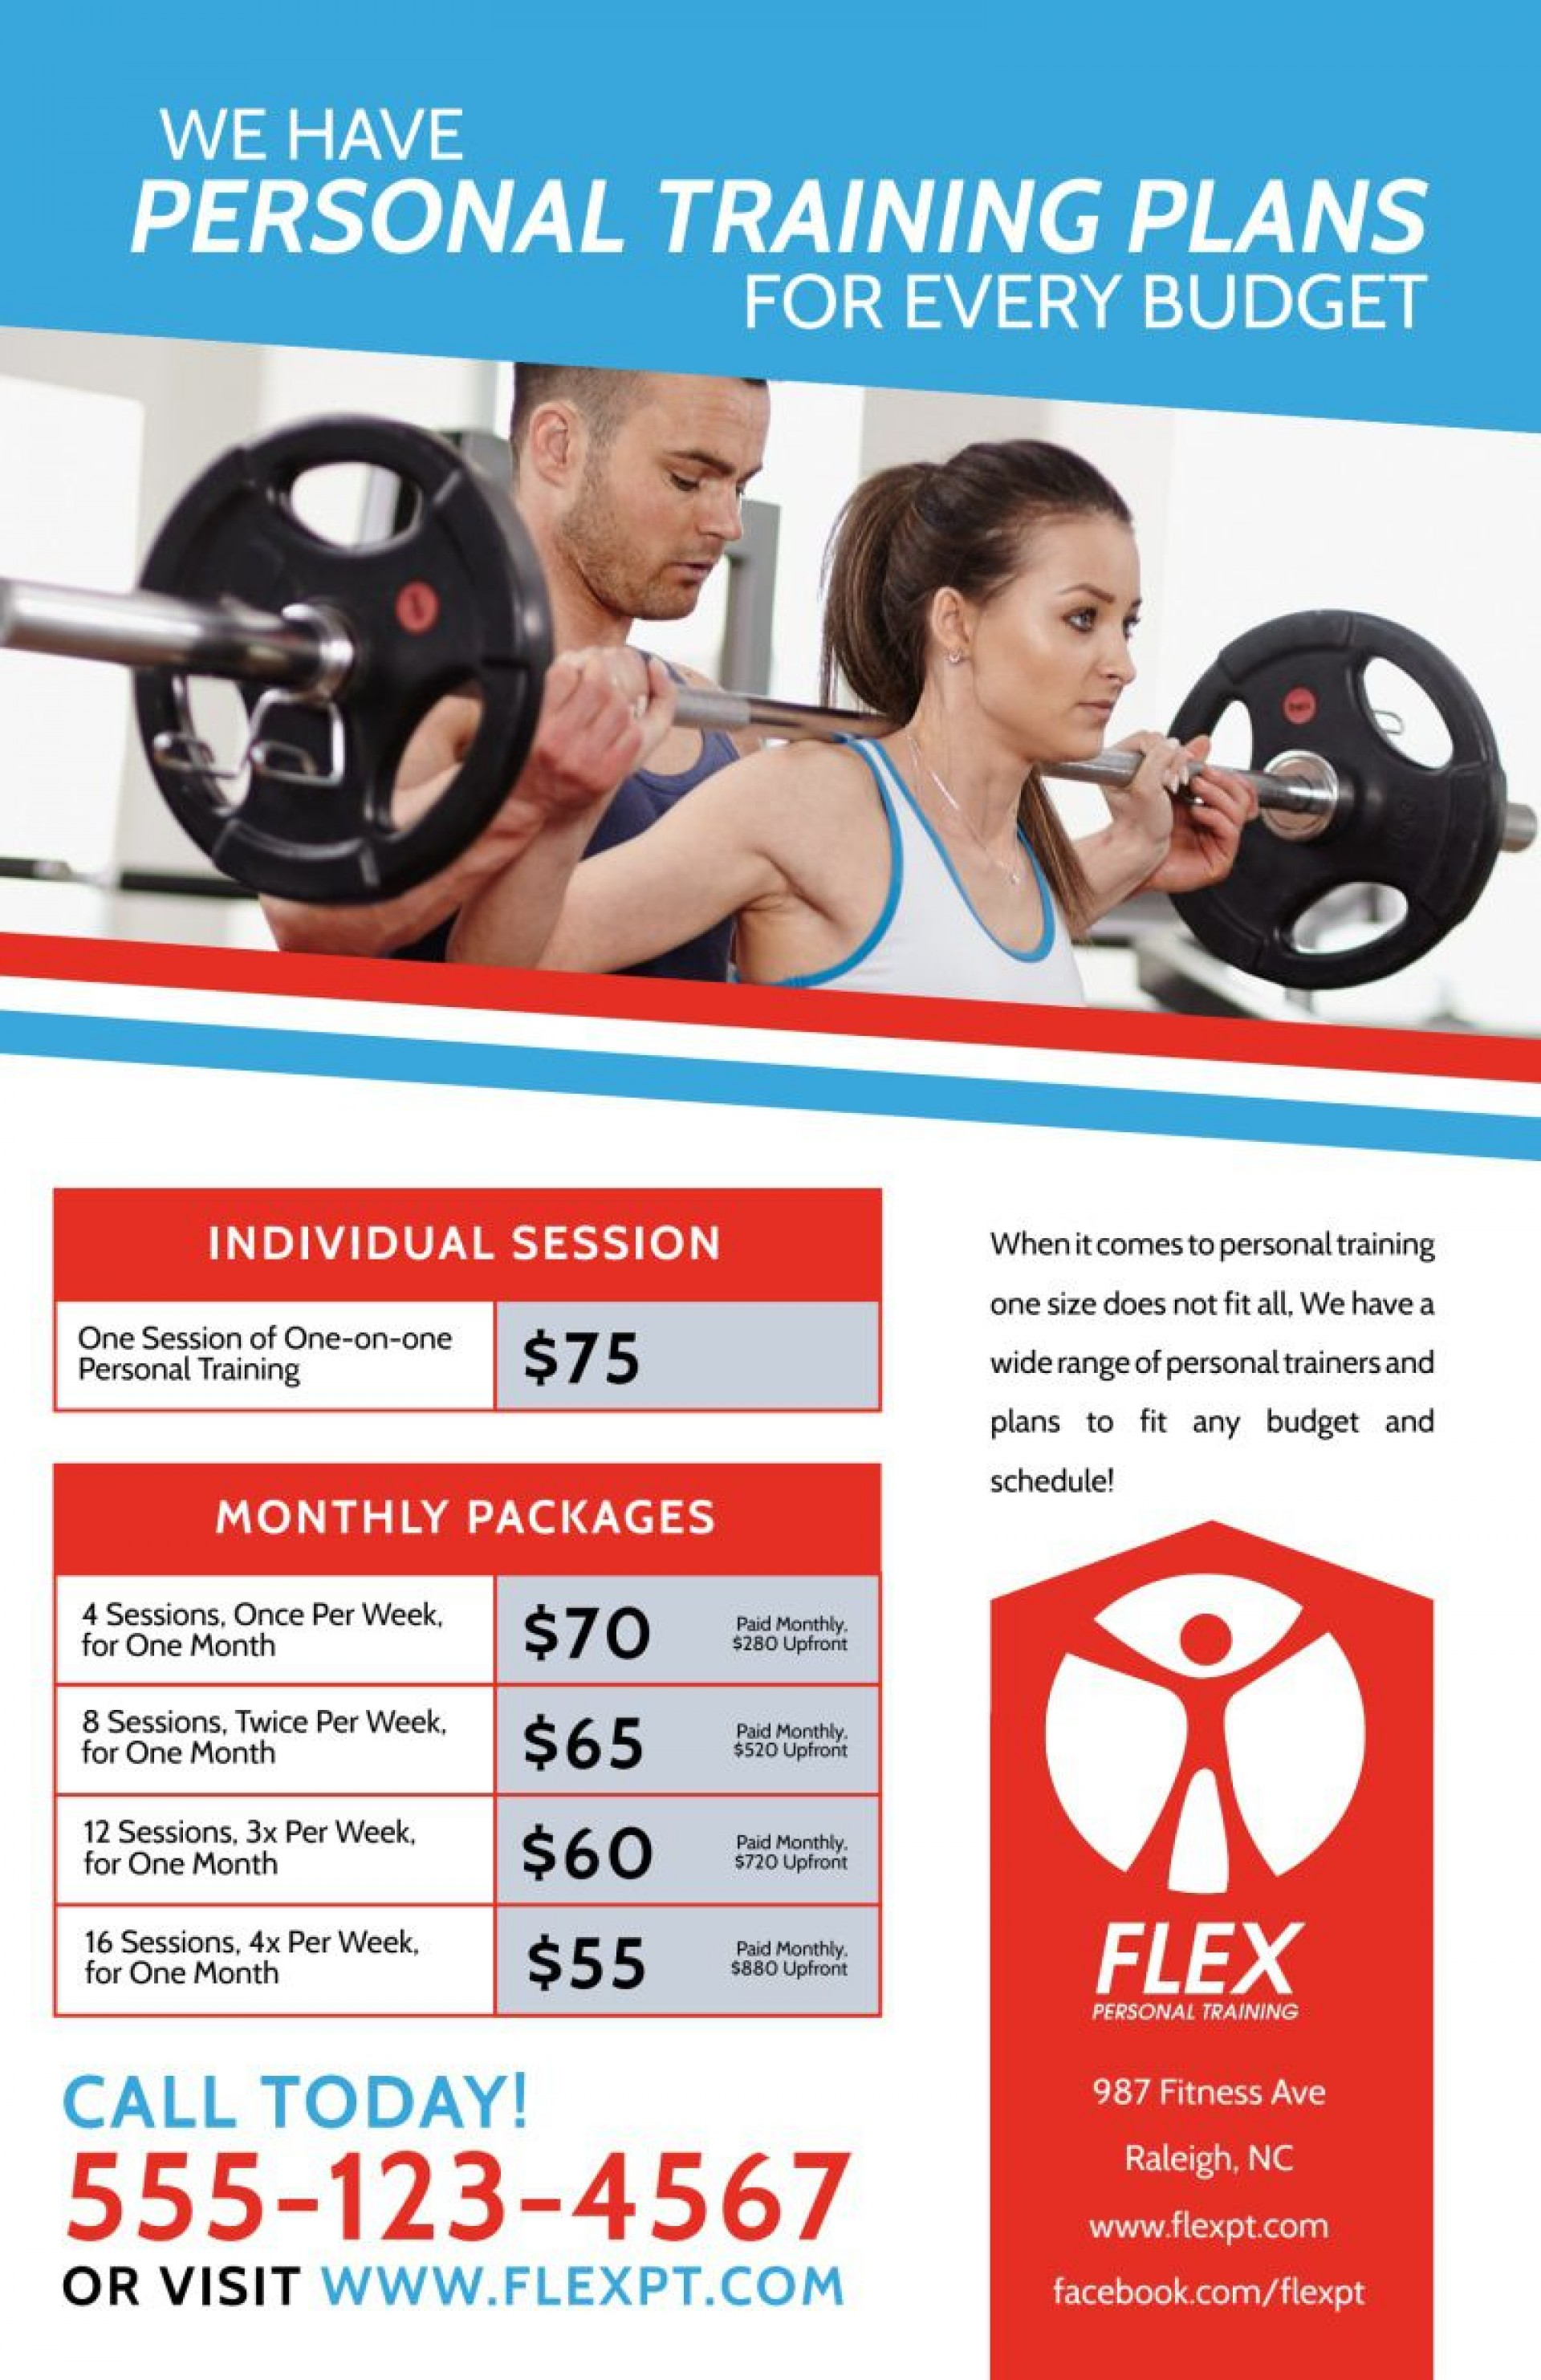 008 Fantastic Personal Trainer Flyer Template Example  Word Psd1920